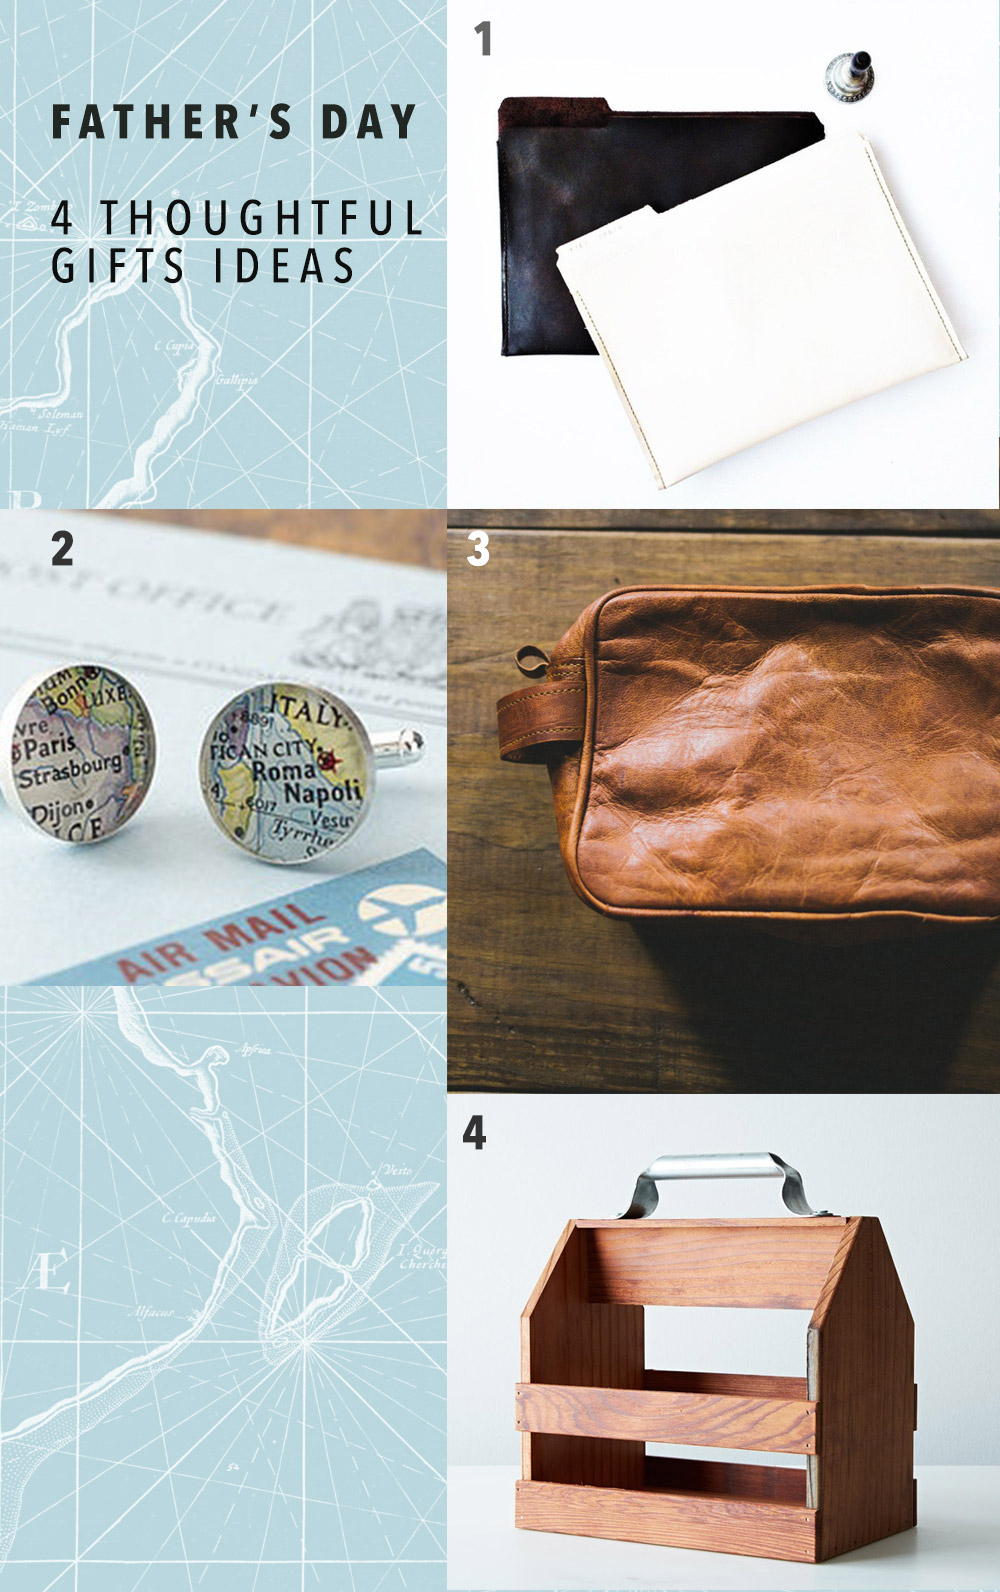 Father's Day 4 thoughtful gift ideas by kraft&mint